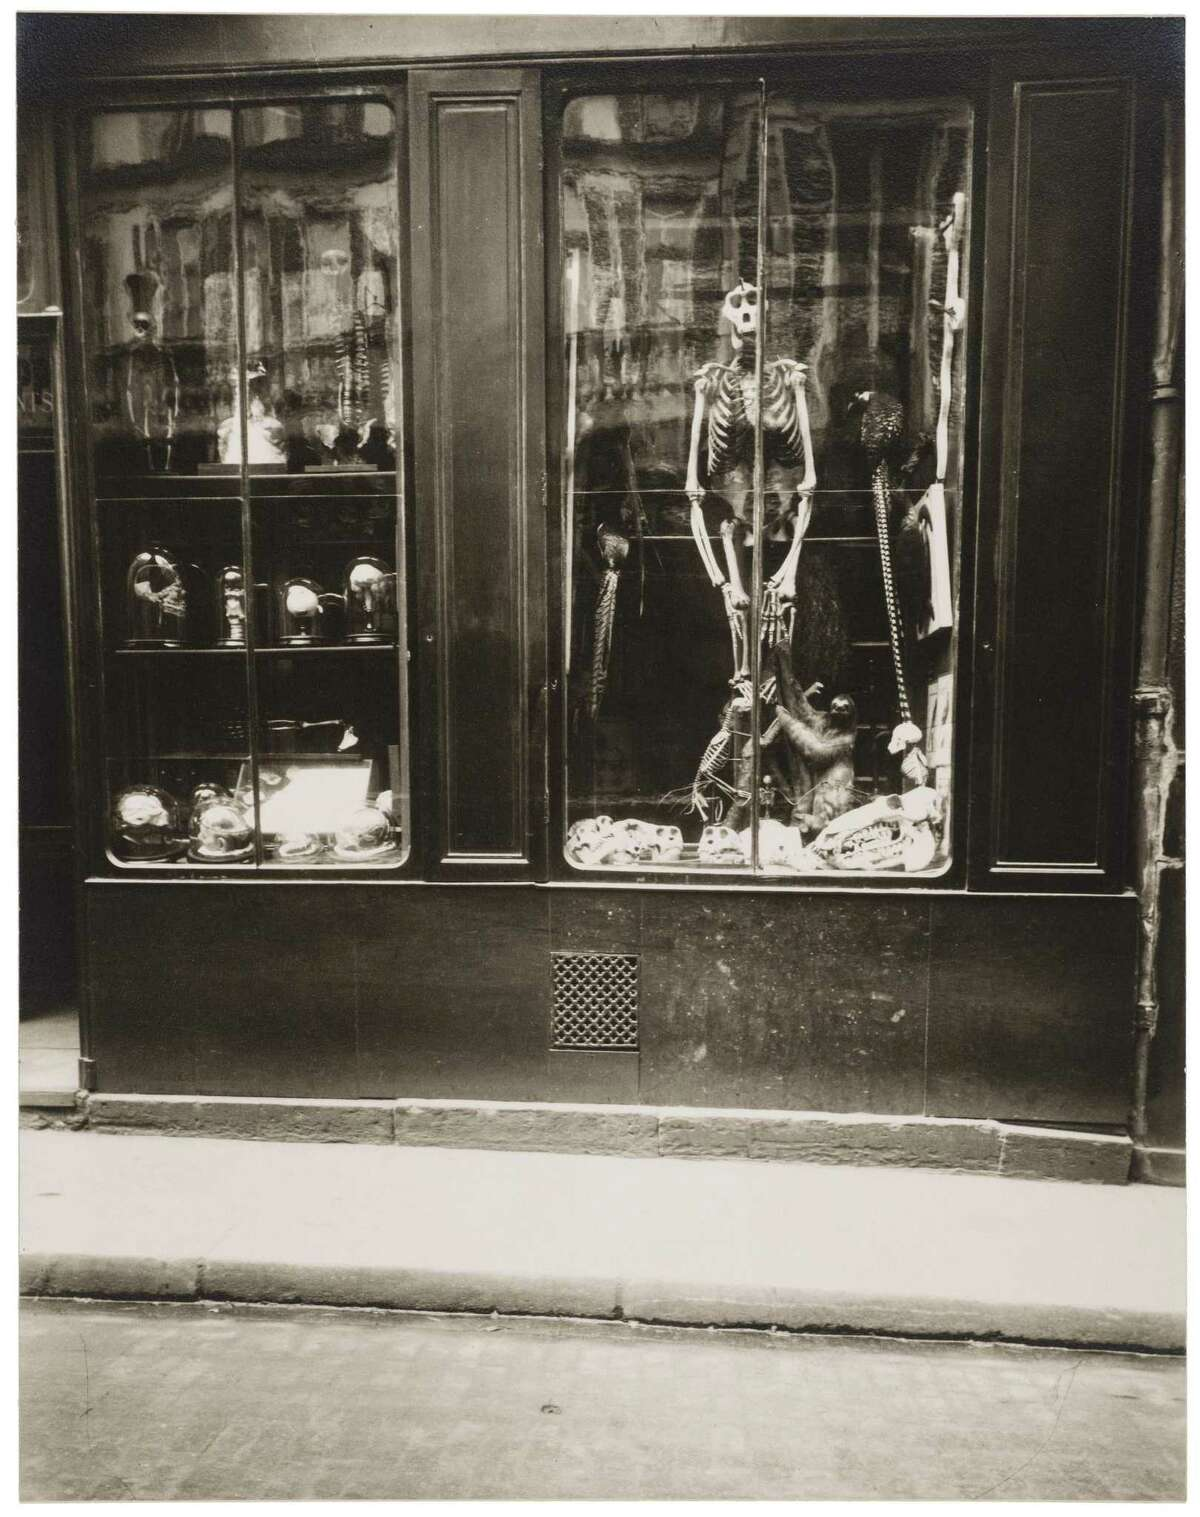 A creepy gelatin silver print taken by Eugene Atget in the 1920s inspired Edward Gorey. It is on view at the Wadsworth Atheneum in Hartford.